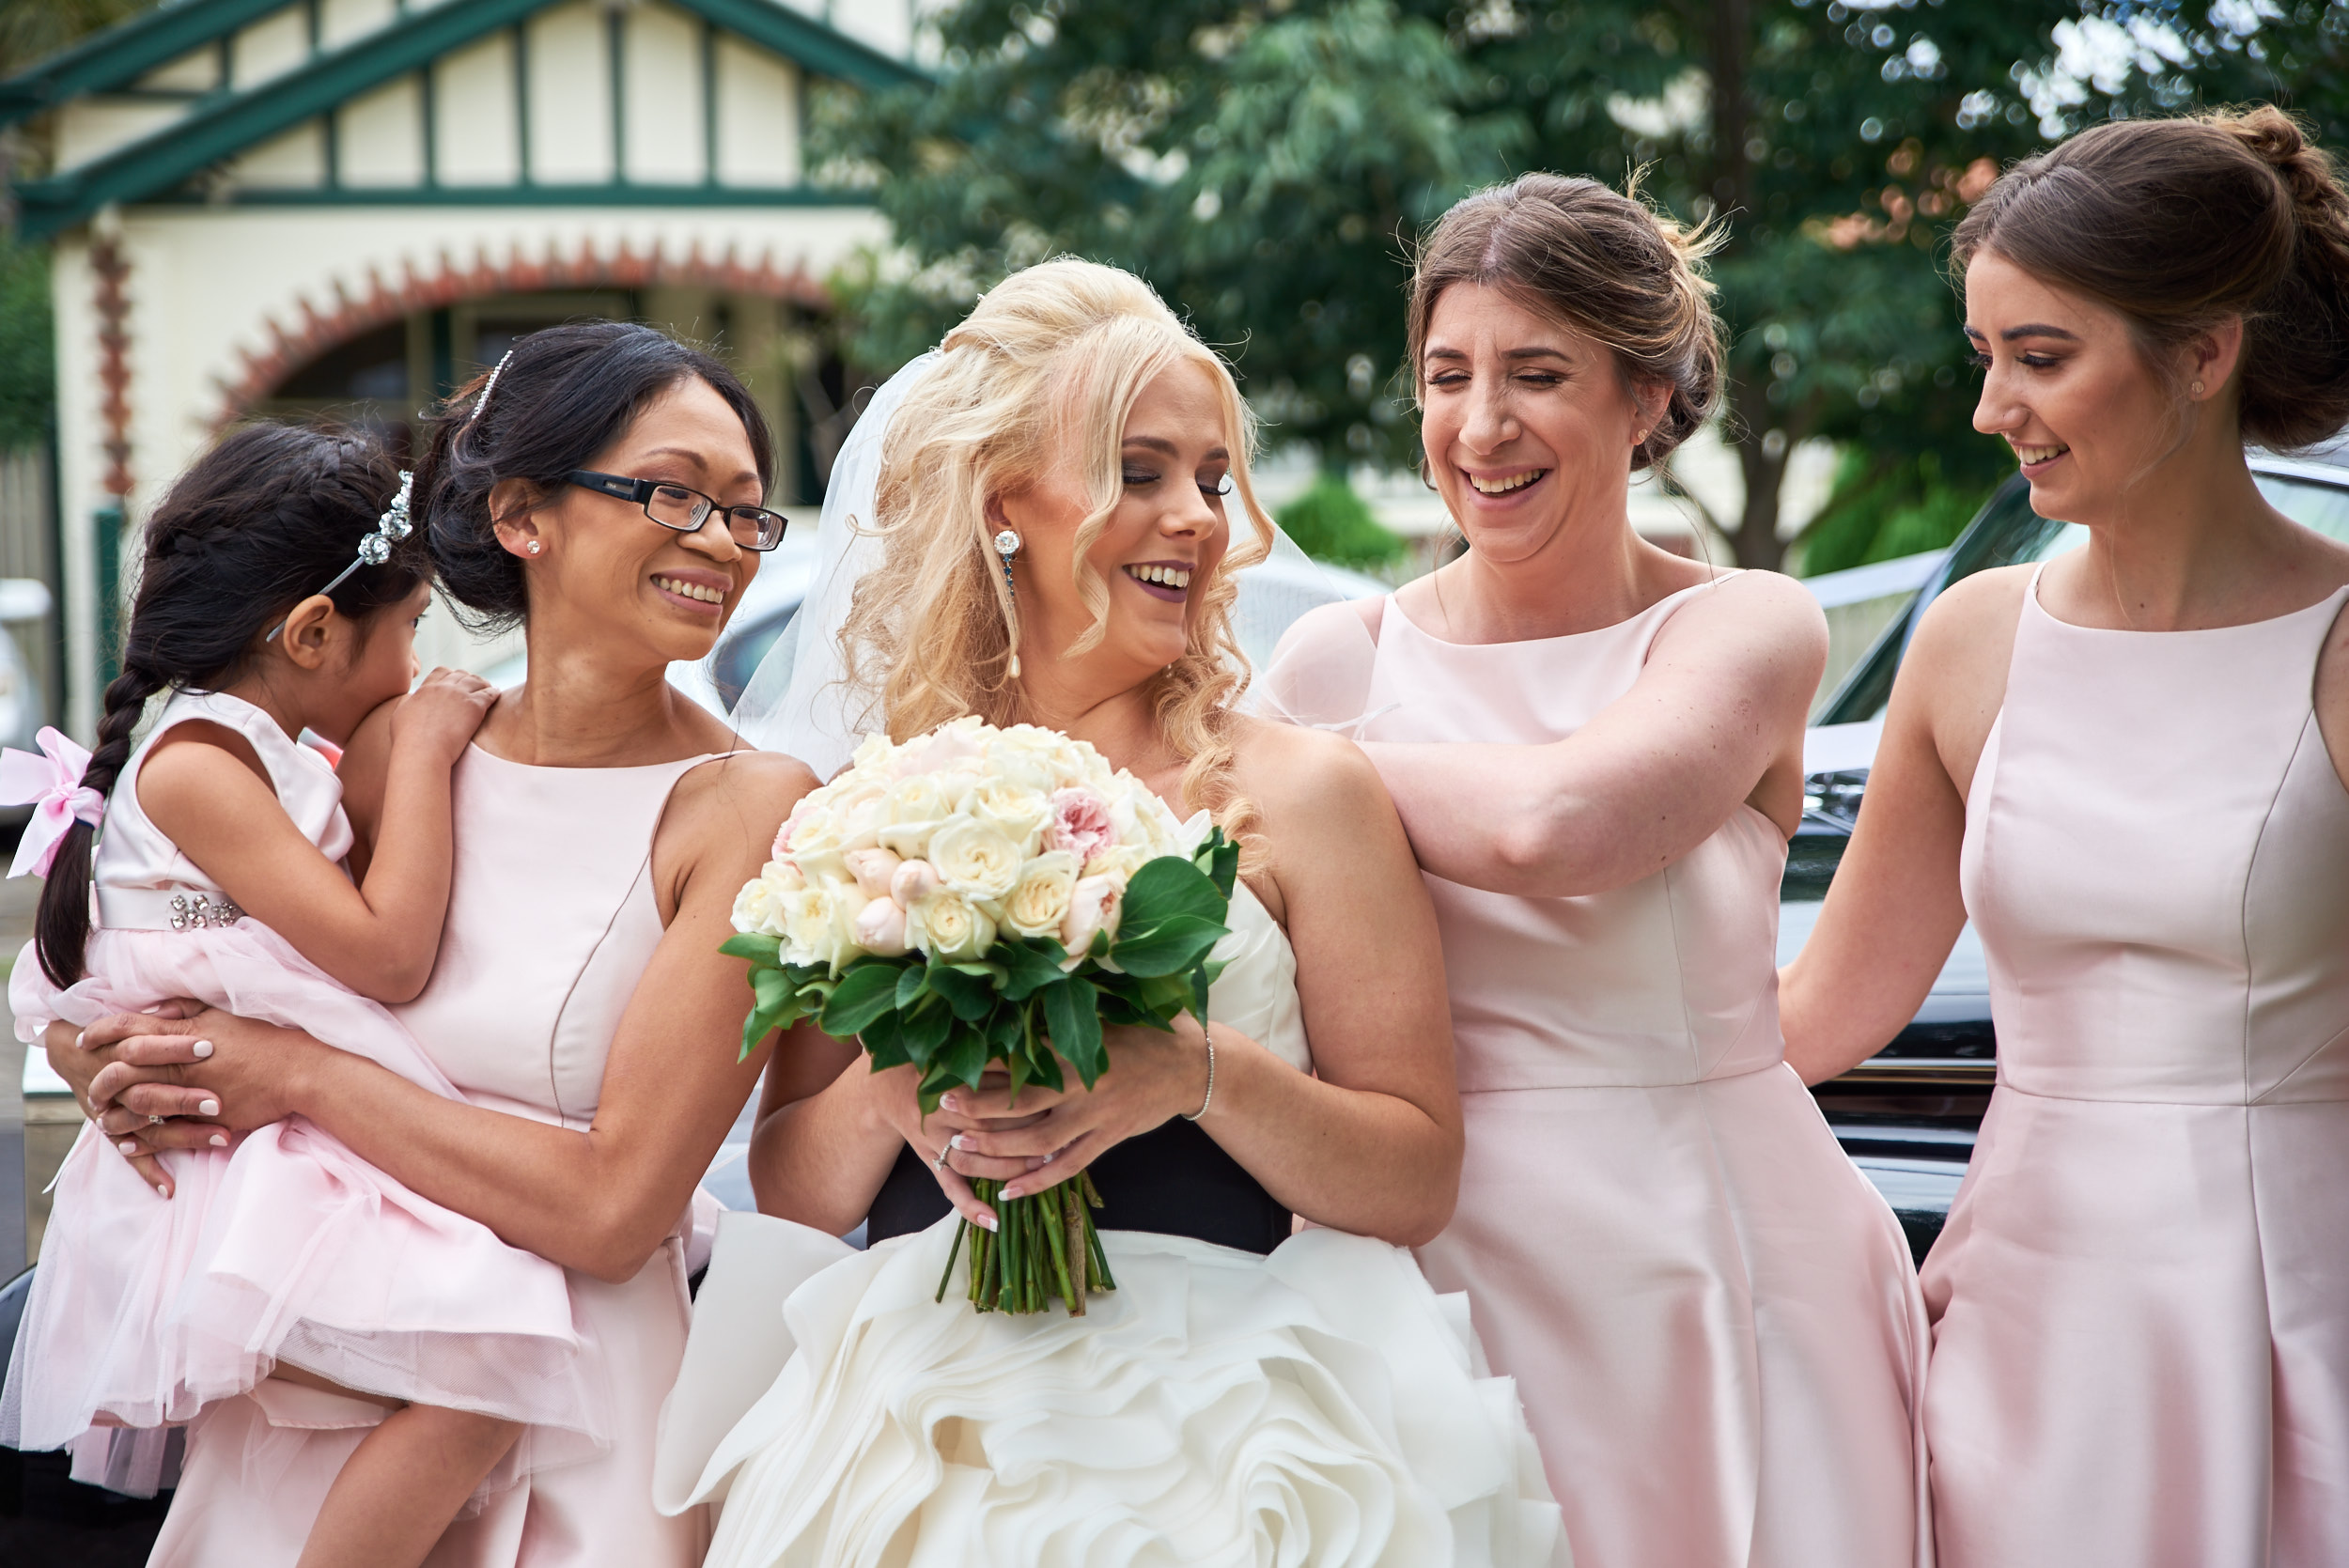 Bride and bridesmaids laughing